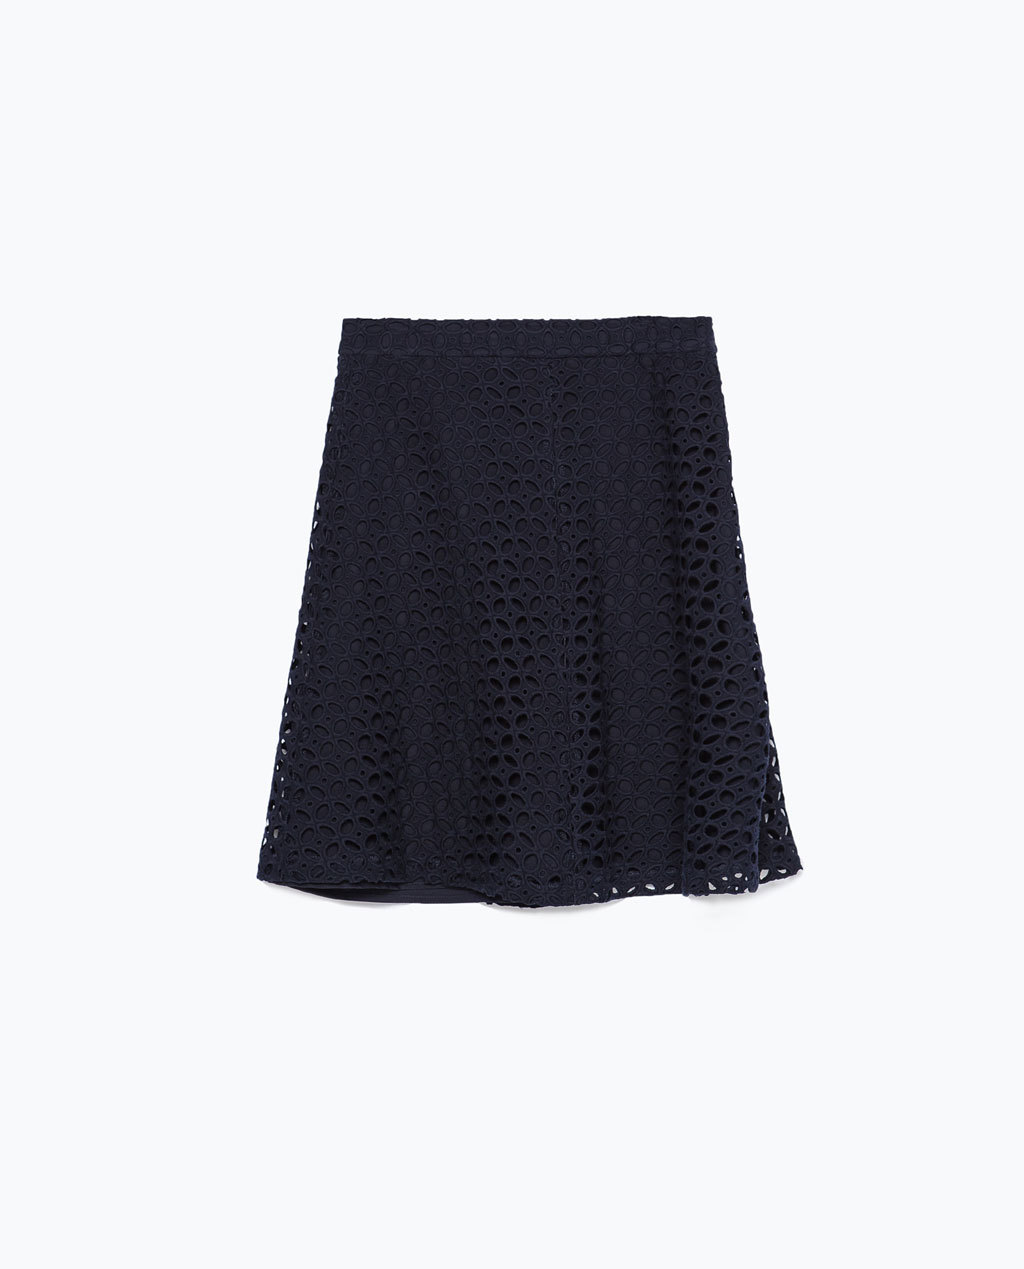 A Line Skirt - length: mid thigh; pattern: plain; fit: loose/voluminous; waist: high rise; predominant colour: black; occasions: casual, evening, creative work; style: a-line; fibres: cotton - 100%; hip detail: subtle/flattering hip detail; texture group: cotton feel fabrics; pattern type: fabric; season: s/s 2015; wardrobe: basic